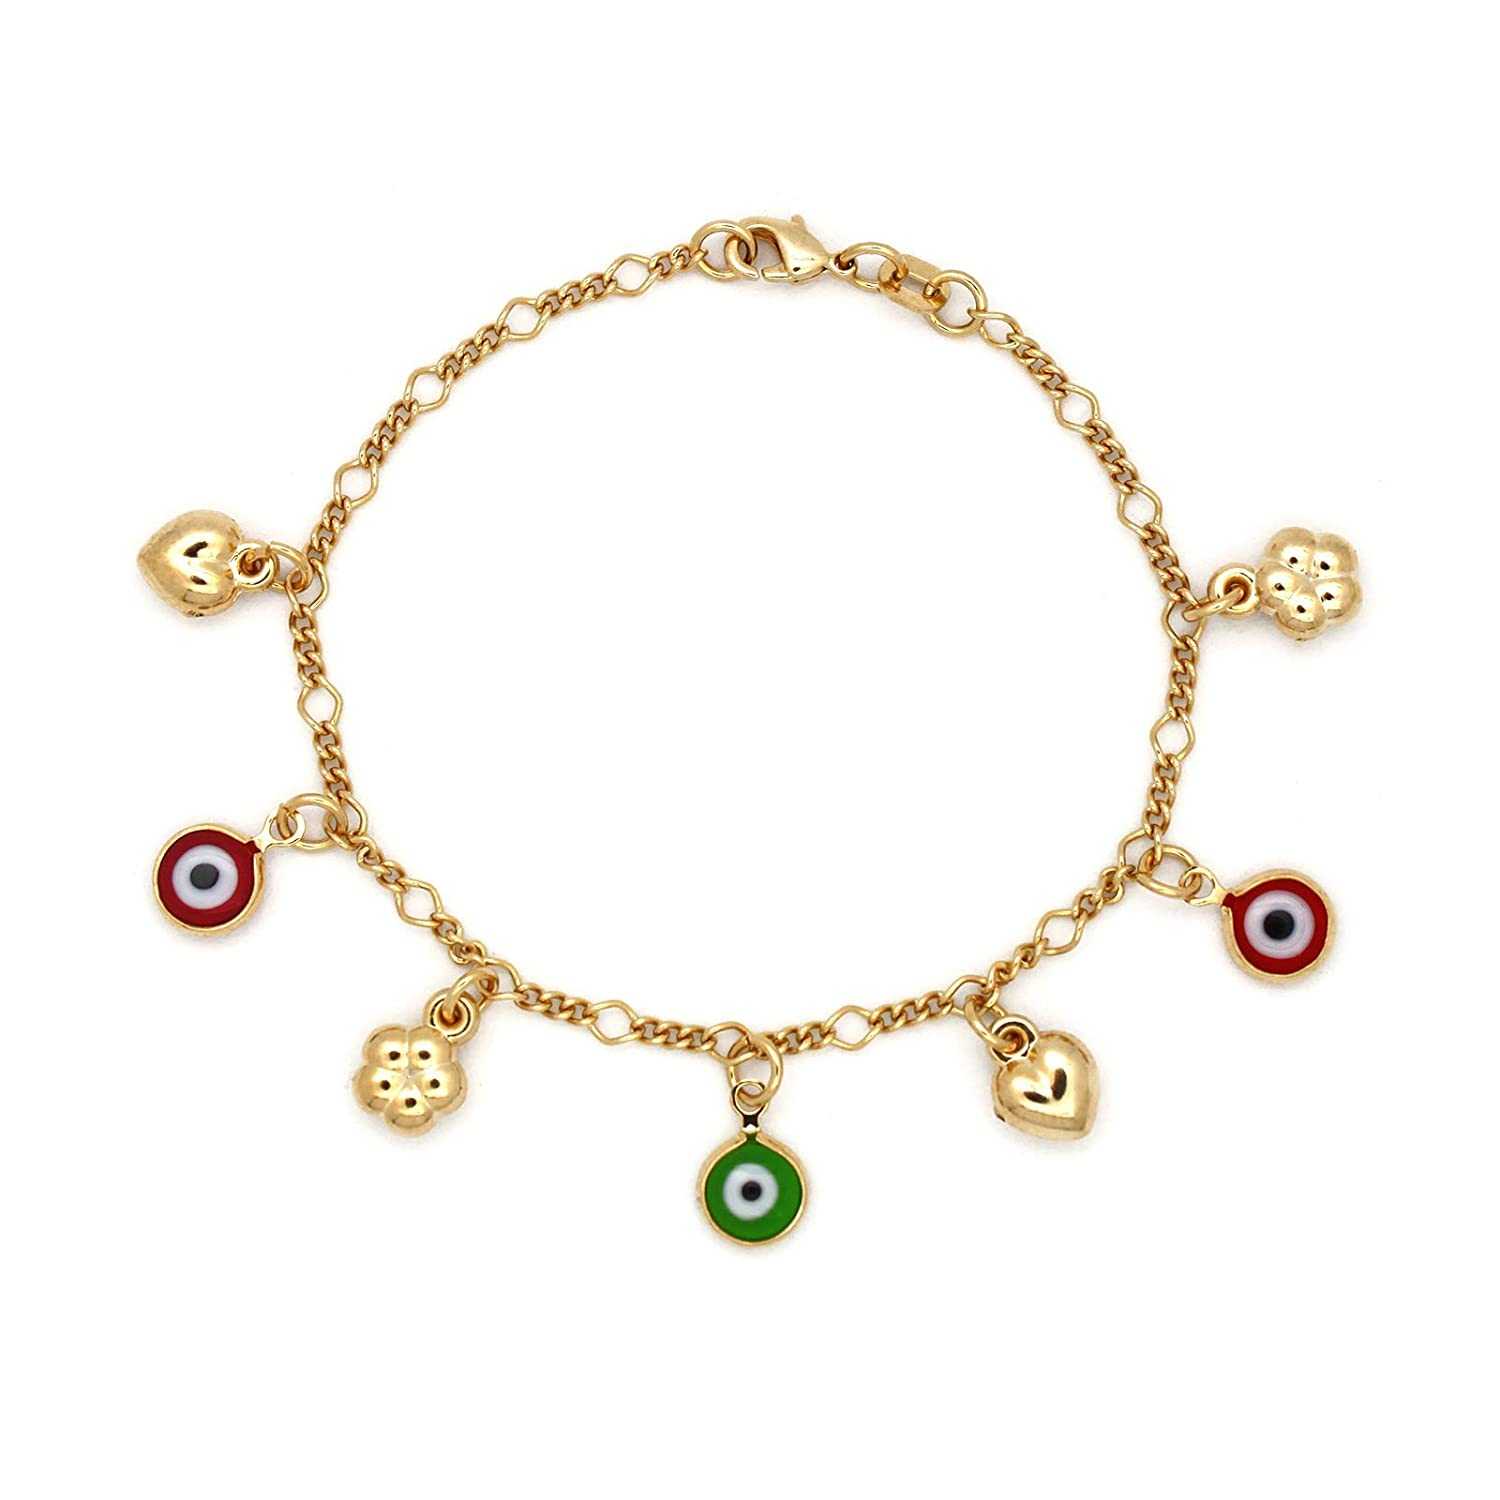 JEWELRY PARADISE Evil Eye Heart Clover Beads Charms Baby Child Girl Kid Teen Bracelet Chain Lucky Protection Love Prosperity 14kt Gold Filled Overlay-Plated Jewelry Good Luck Amulet